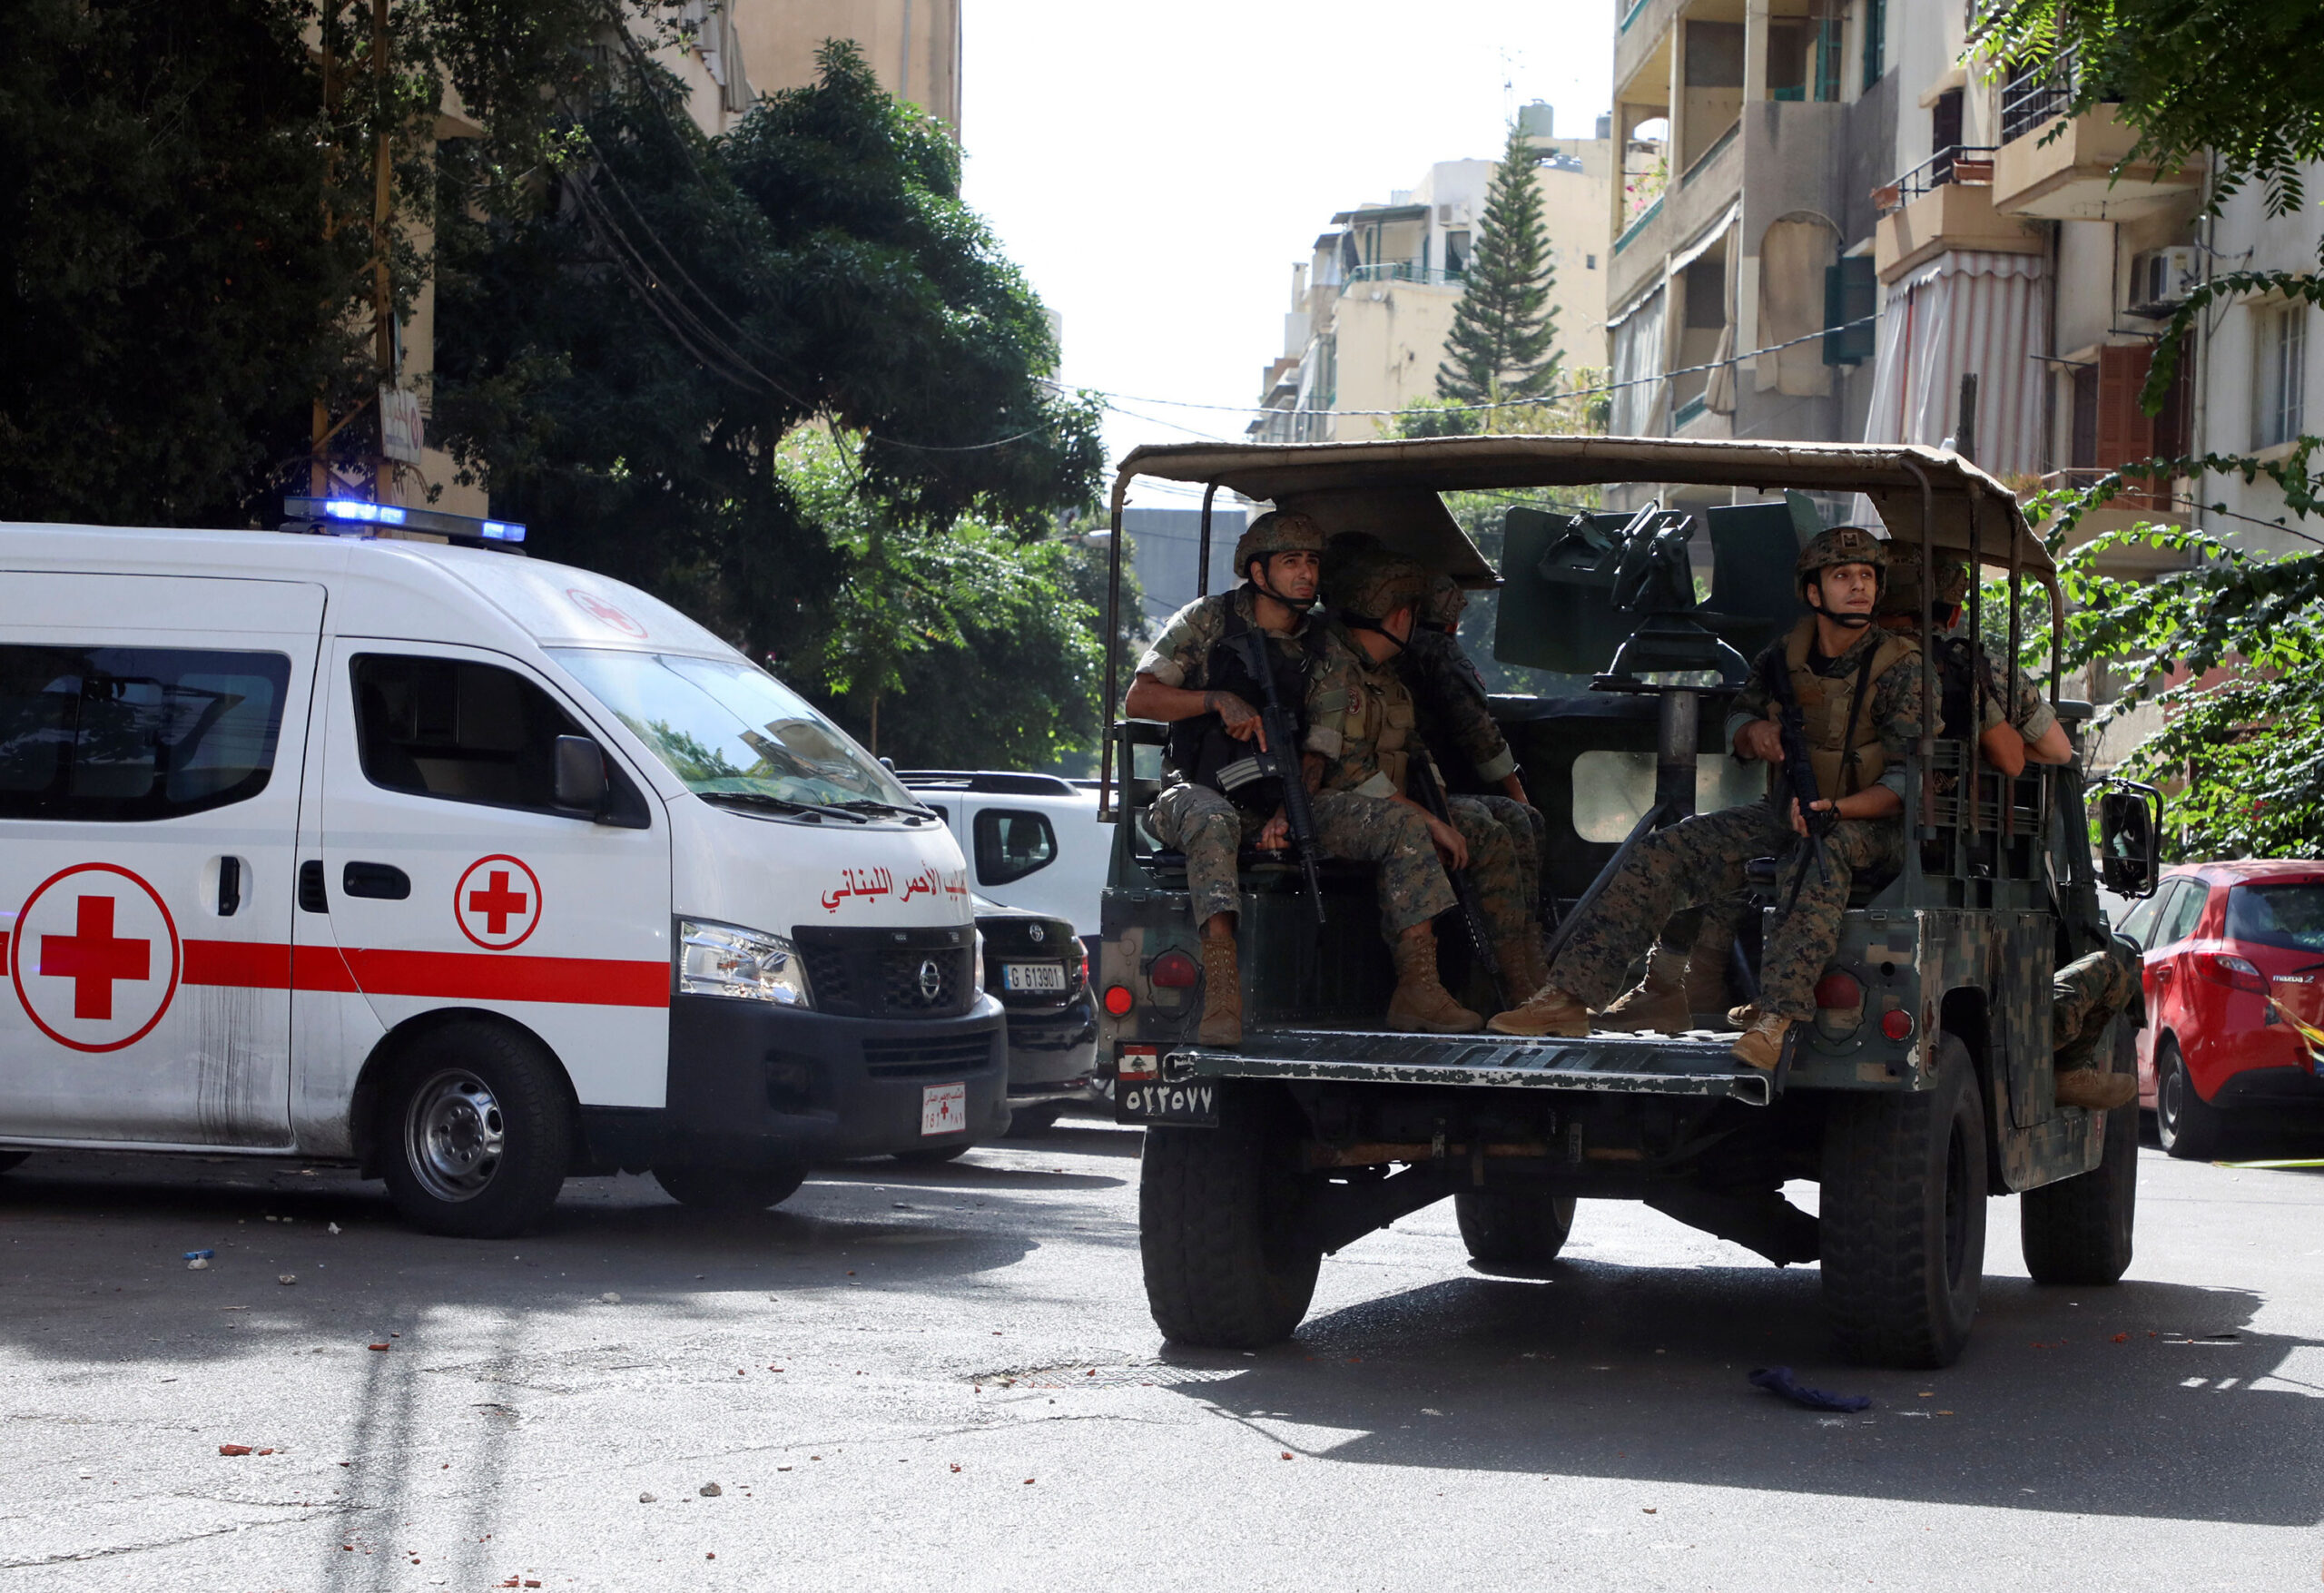 <i>Mohamed Azakir/Reuters</i><br/>The army was deployed in Lebanon's capital after heavy gunfire ahead of a demonstration.